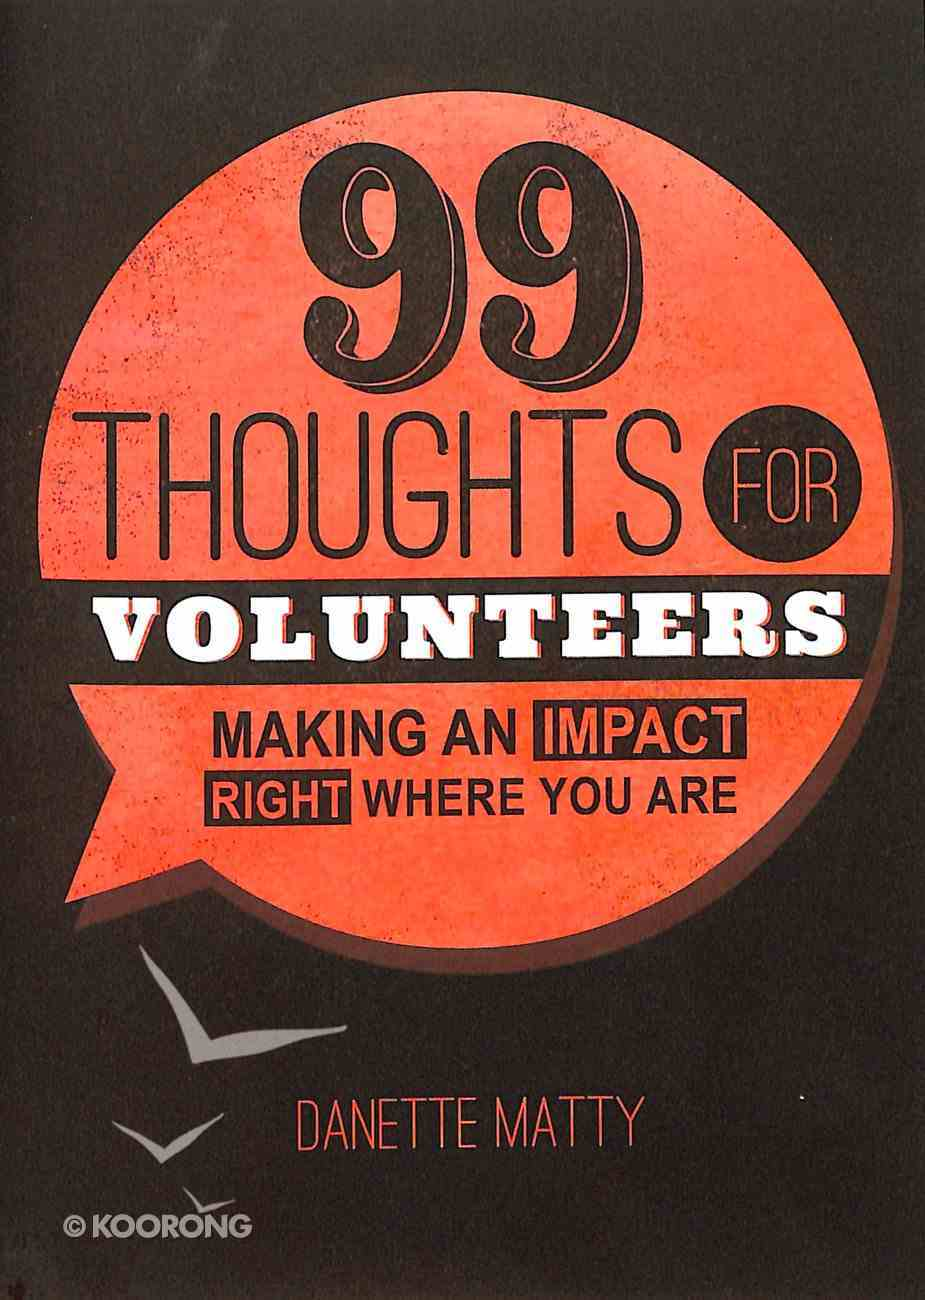 99 Thoughts For Volunteers: Making An Impact Right Where You Are Paperback